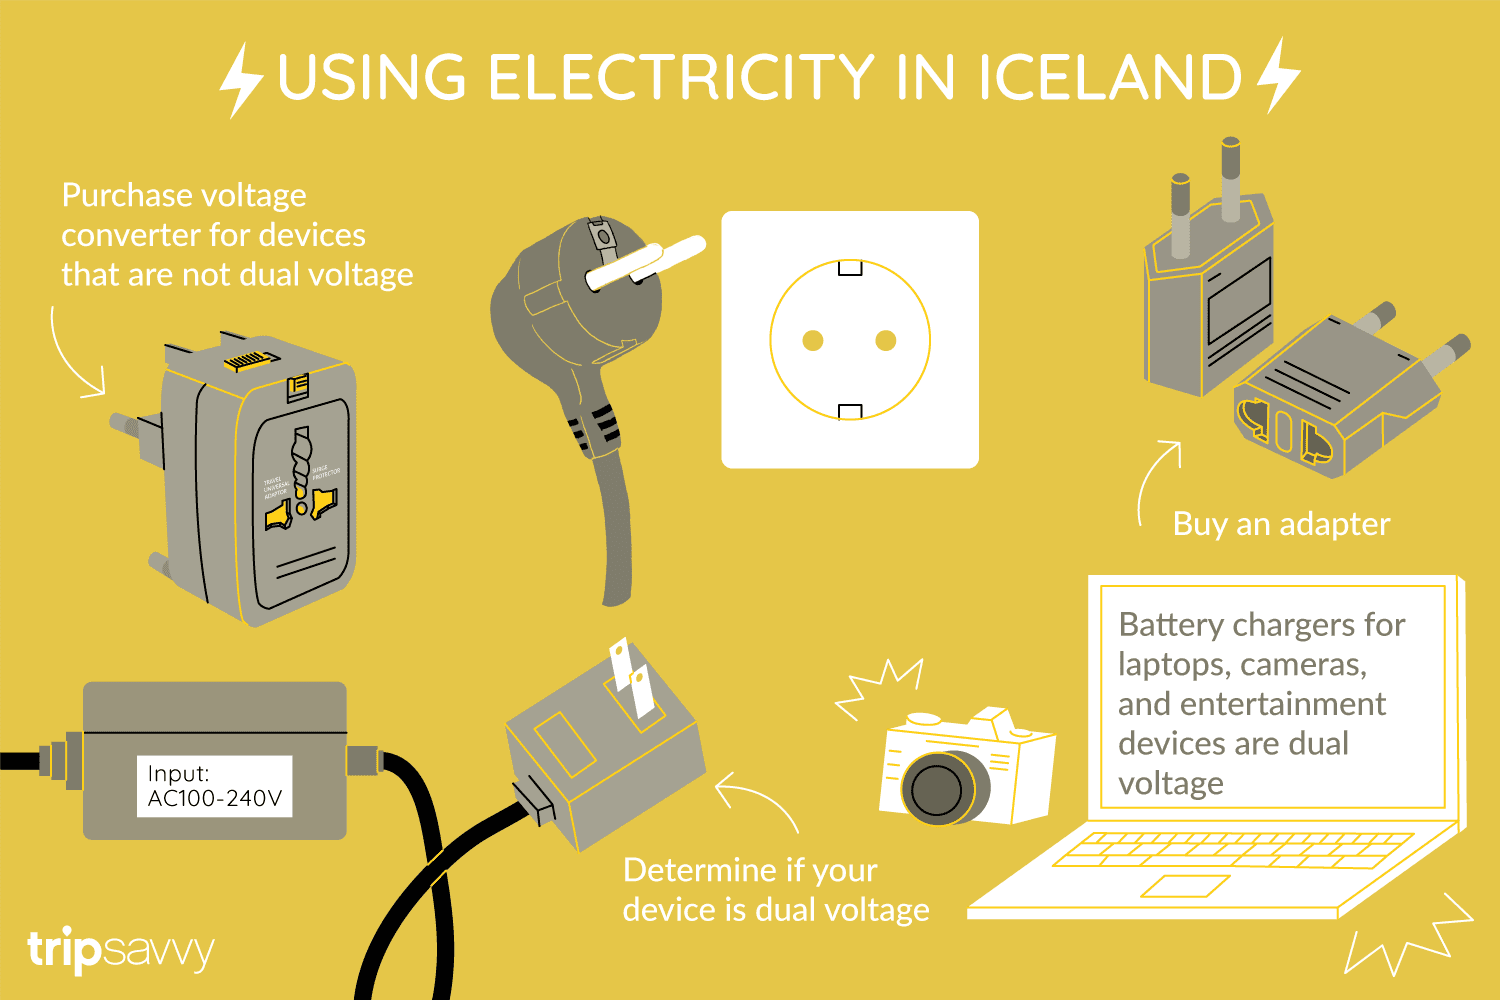 Use Accessories To Link Your Island To The Rest Of Your: The Type Of Electrical Outlet Used In Iceland